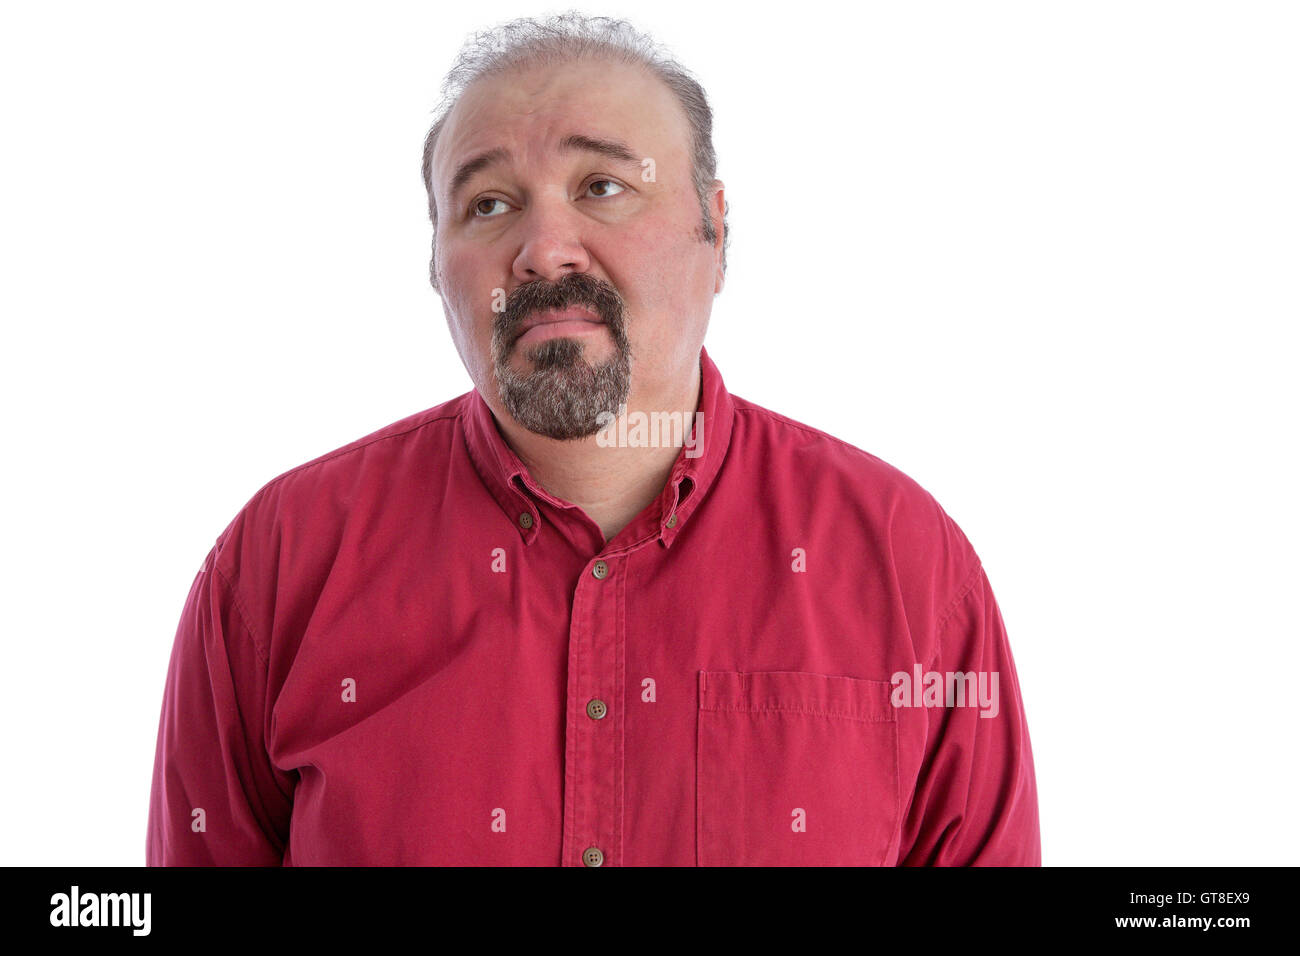 Middle-aged man with baldness and goatee beard wearing a dark red shirt while looking up to the left with a sad - Stock Image